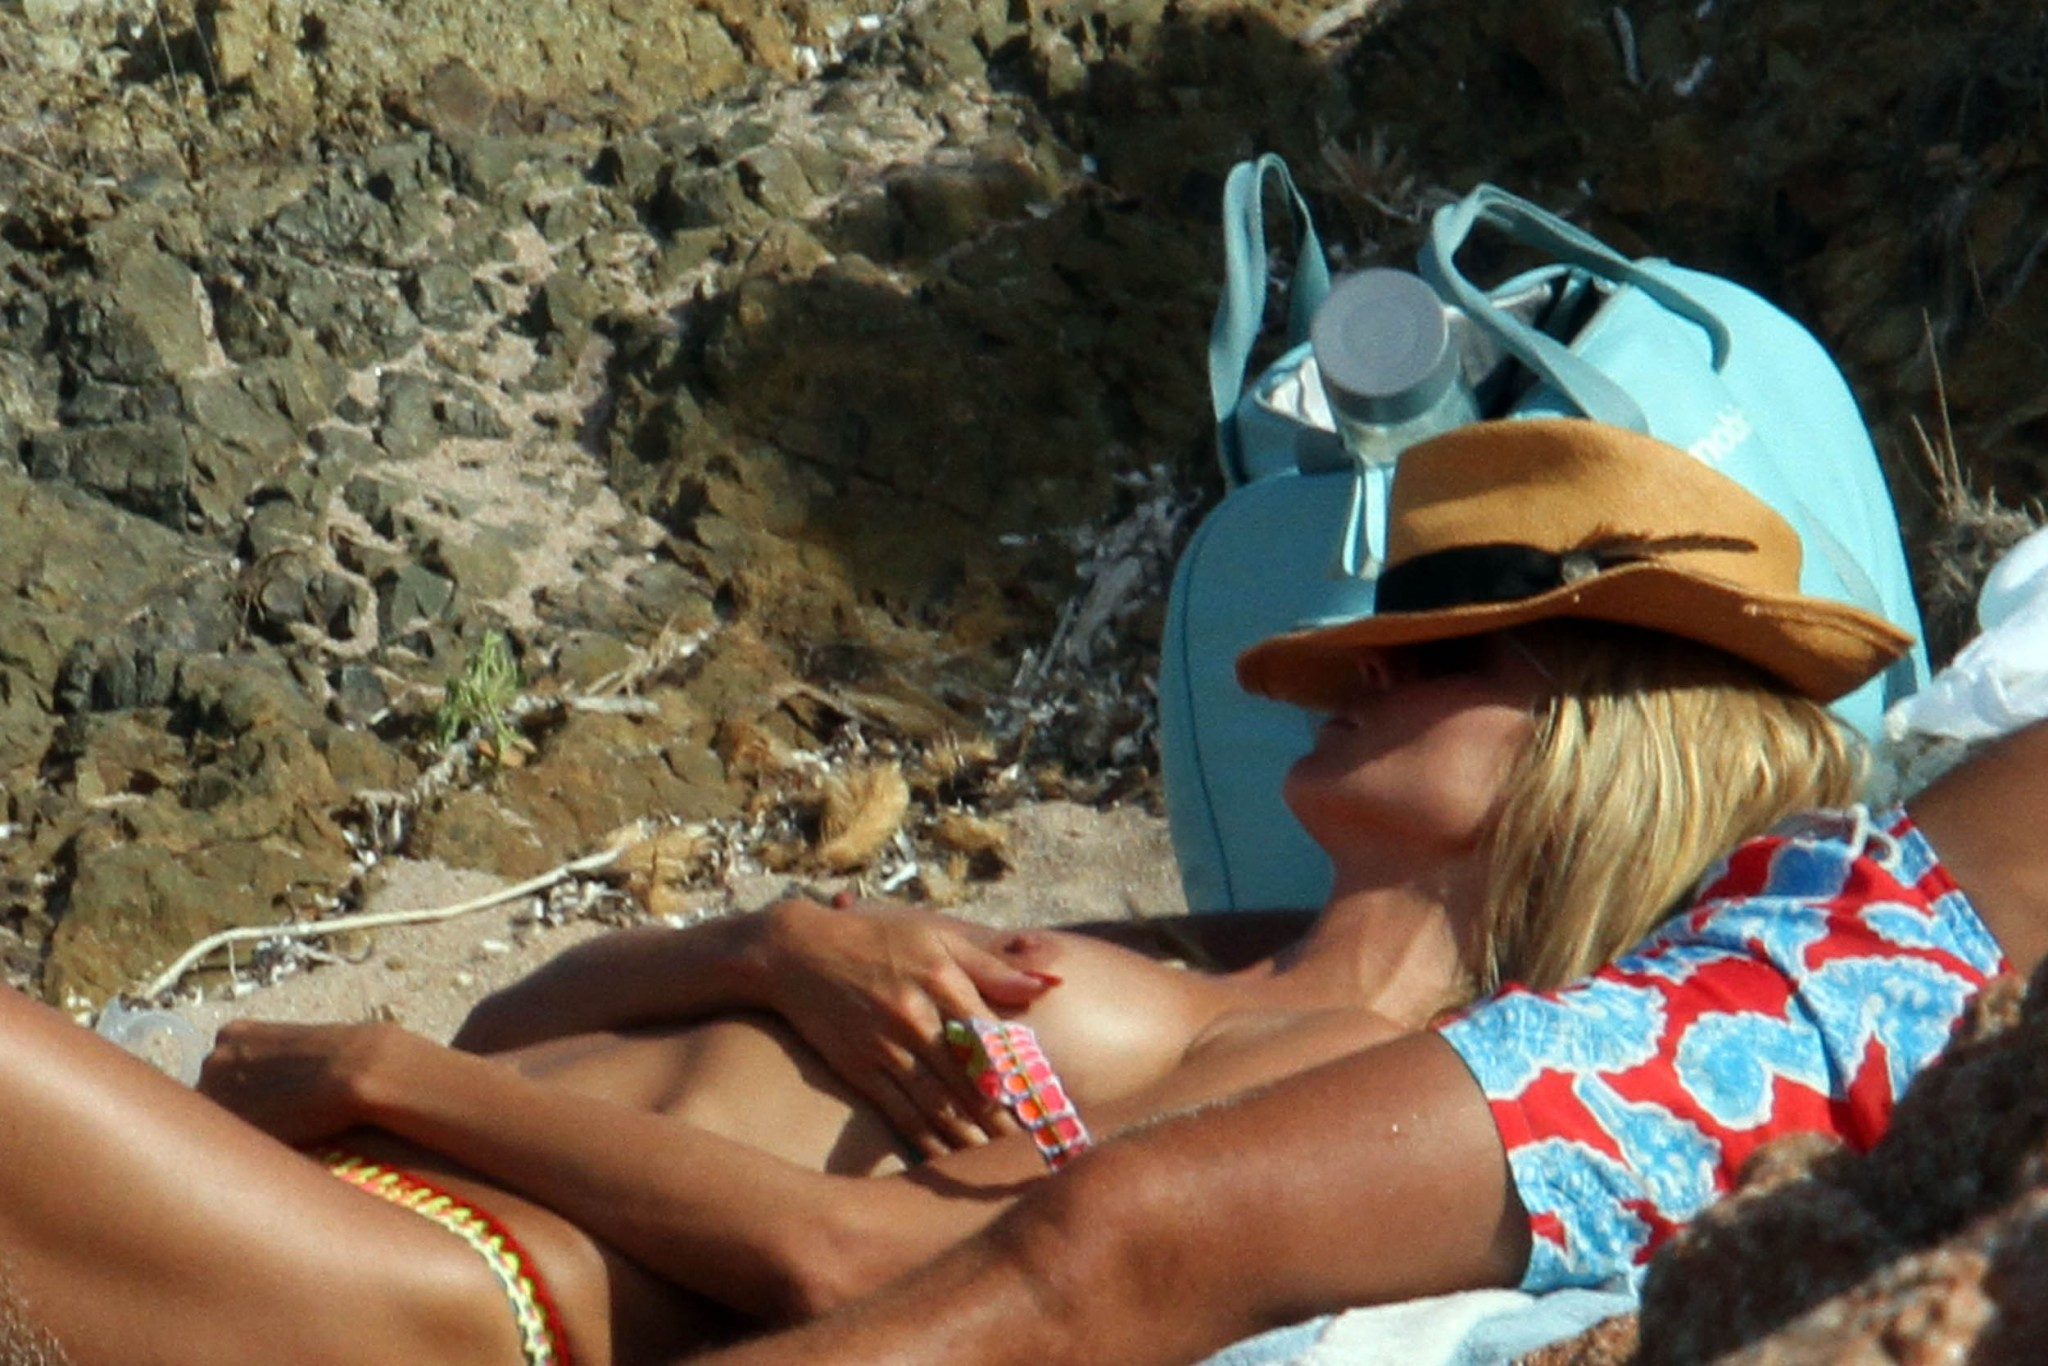 heidi-klum-topless-on-the-beach-in-italy-11